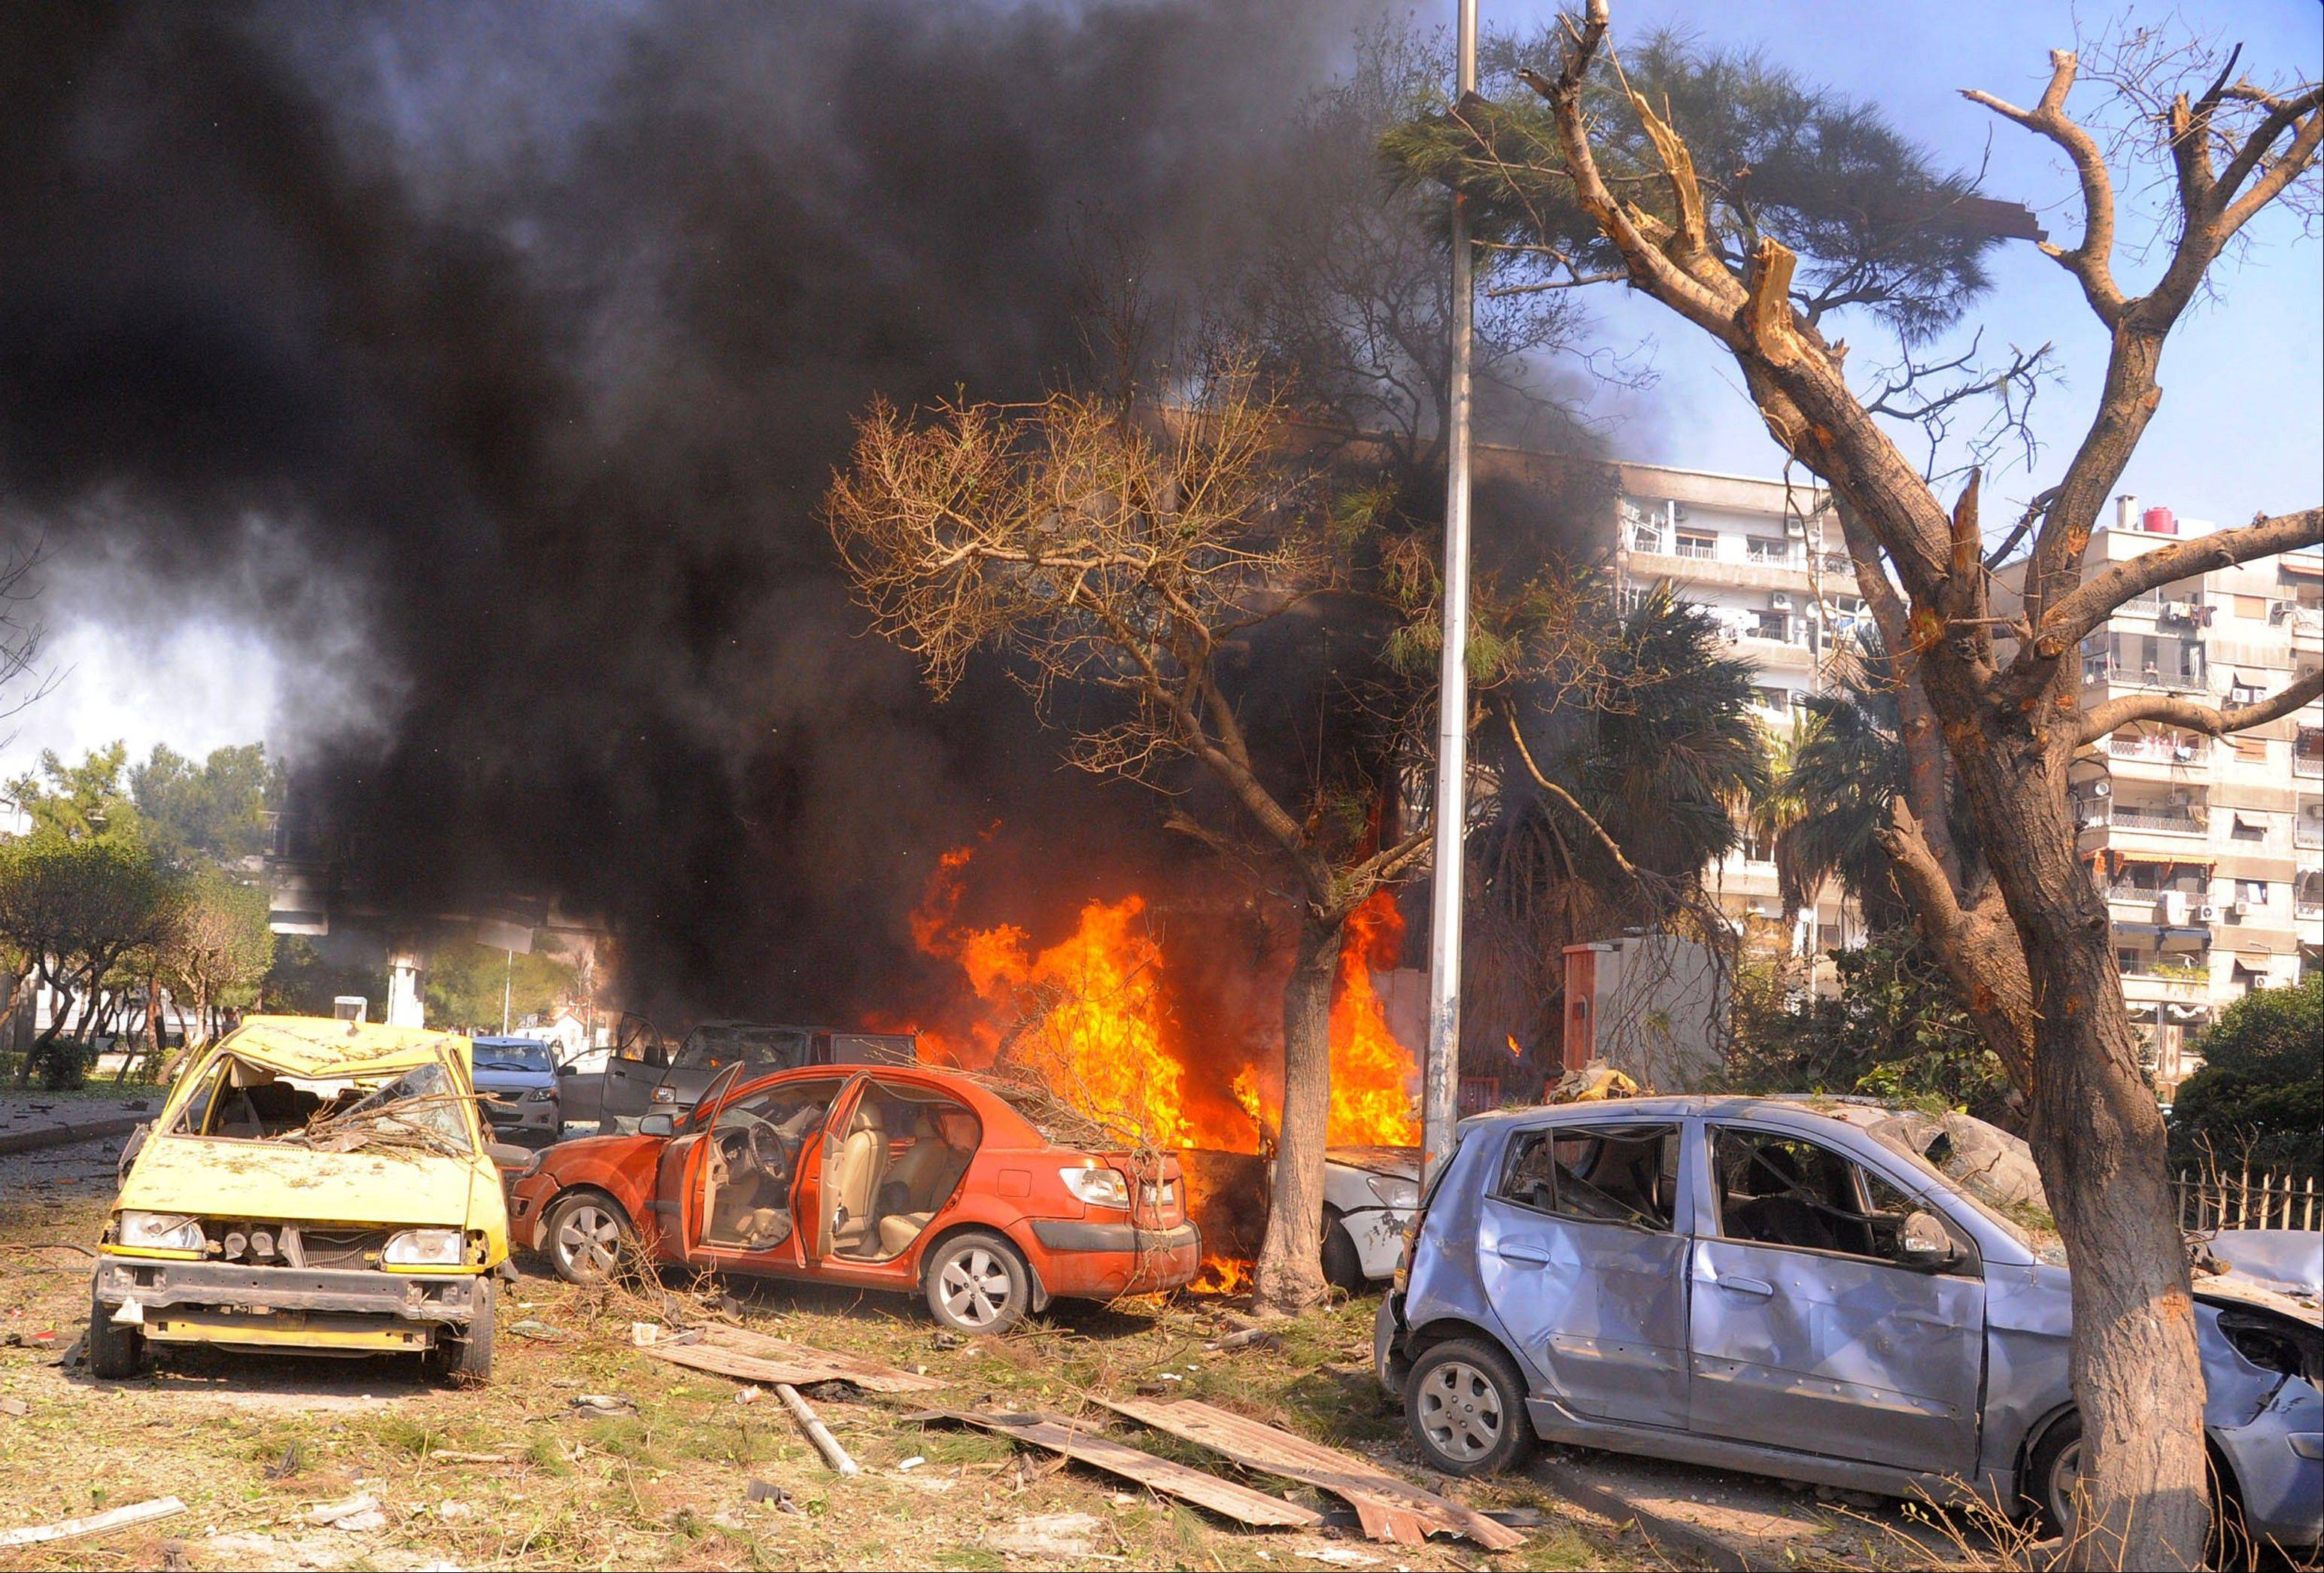 A car bomb shook central Damascus on Thursday, exploding near the headquarters of the ruling Baath Party and the Russian Embassy, eyewitnesses and opposition activists said.